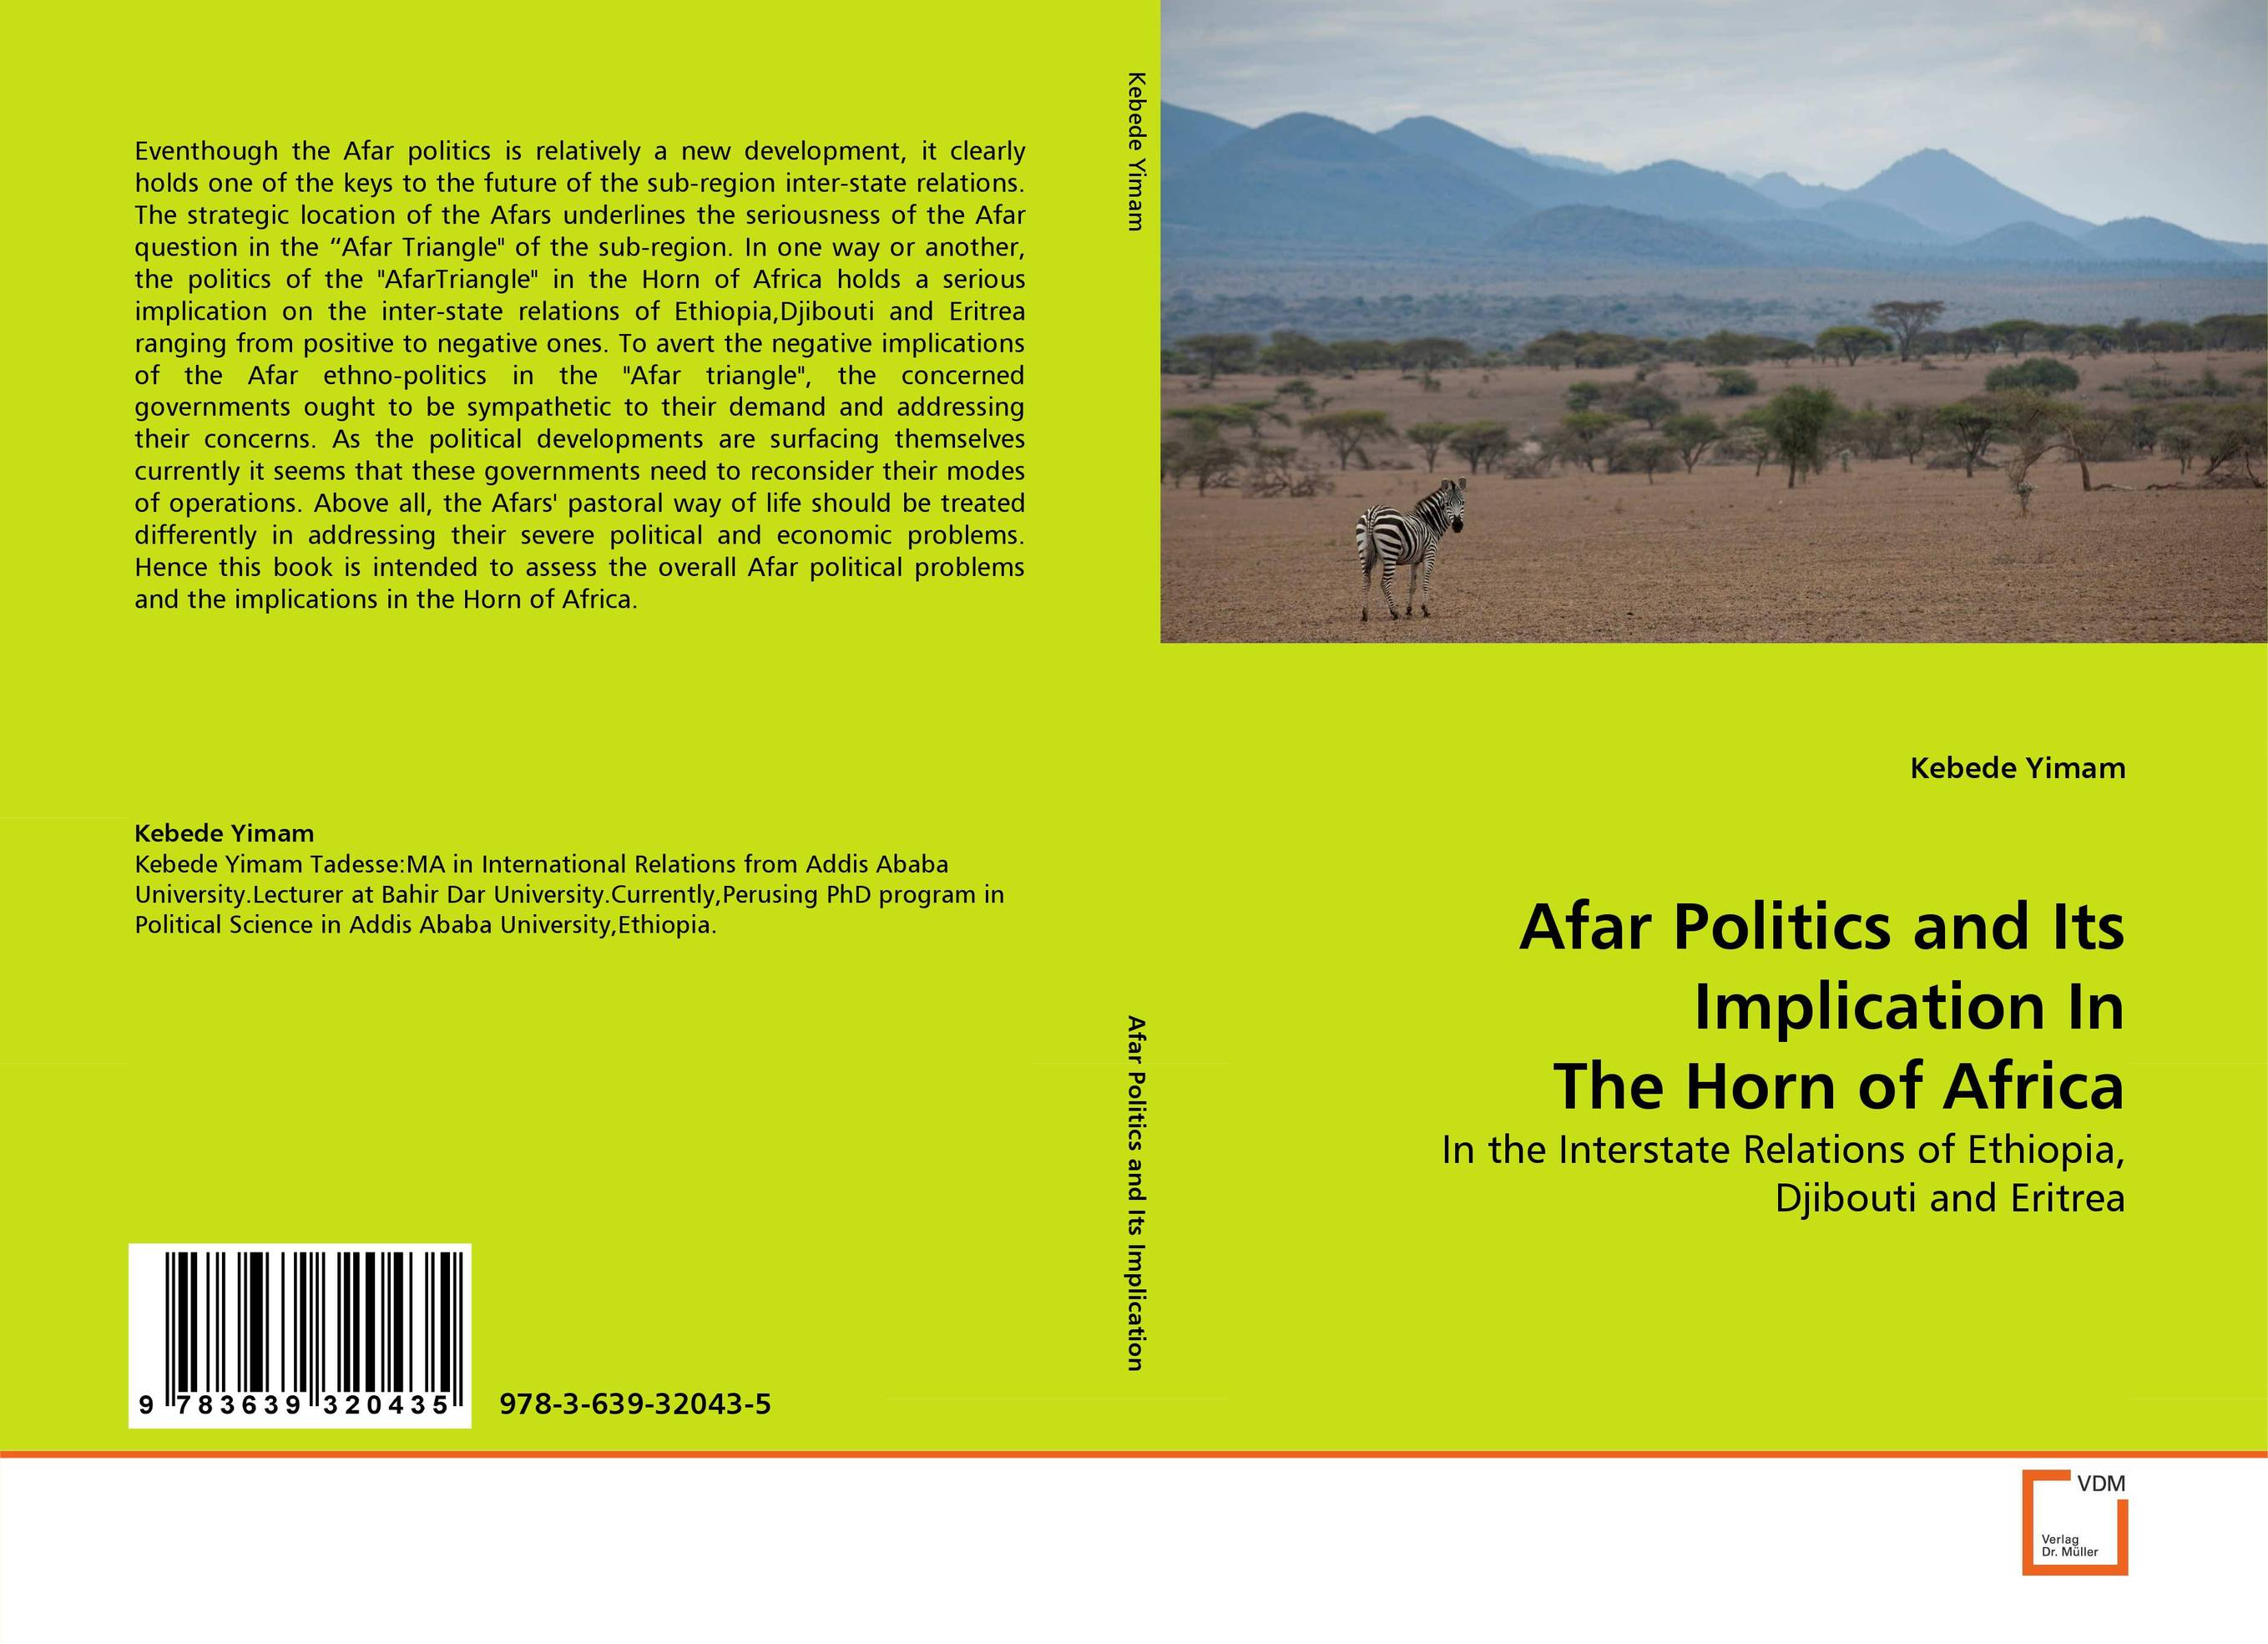 Фото Afar Politics and Its Implication In The Horn of Africa cervical cancer in amhara region in ethiopia